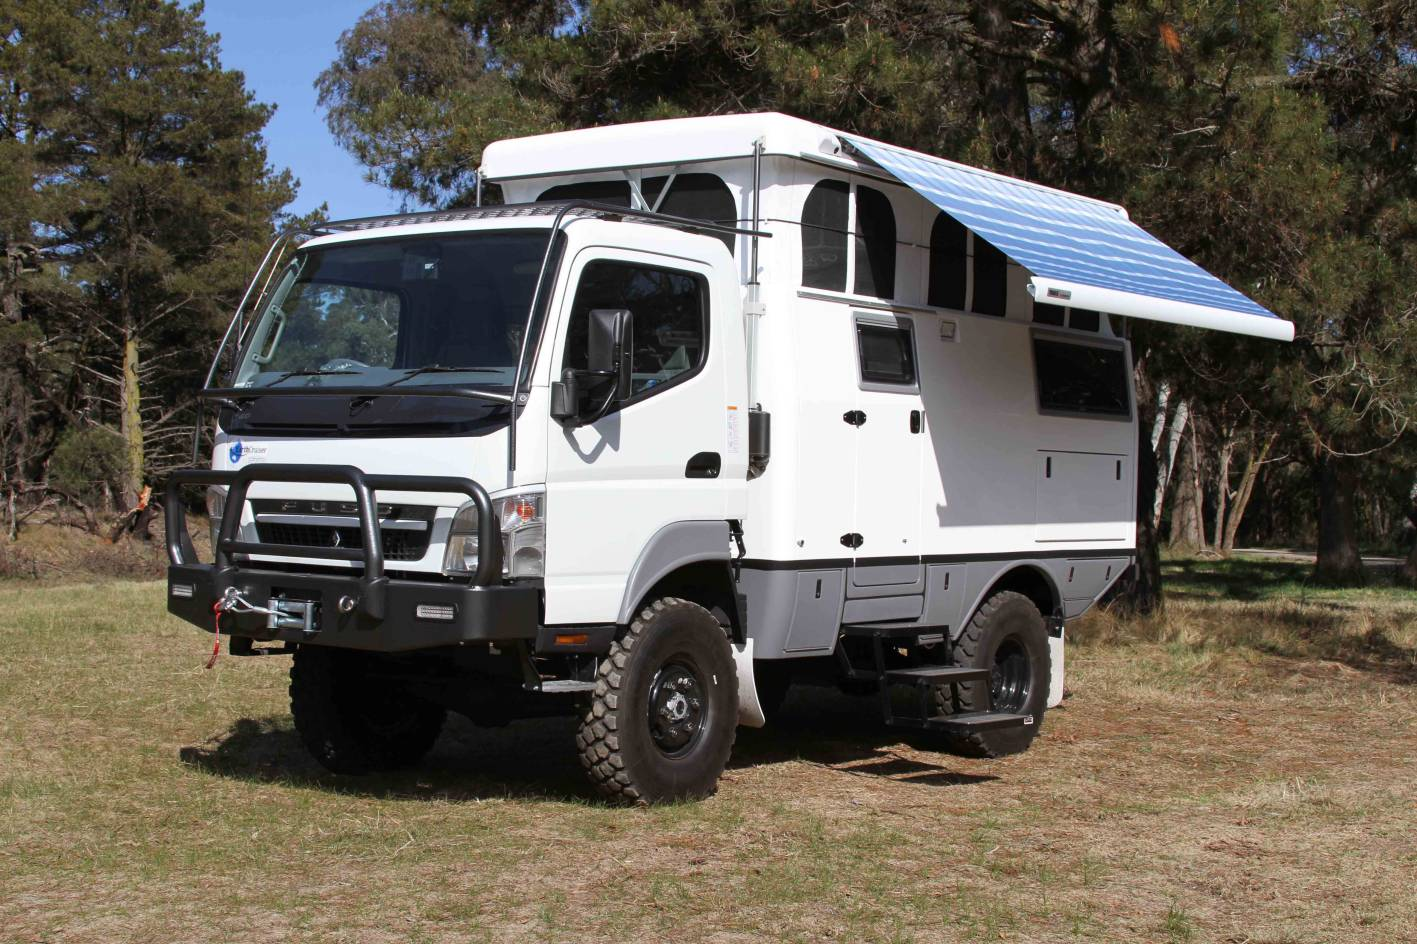 Sportsmobile 4x4 For Sale >> News - EarthCruiser Debuts In Melbourne